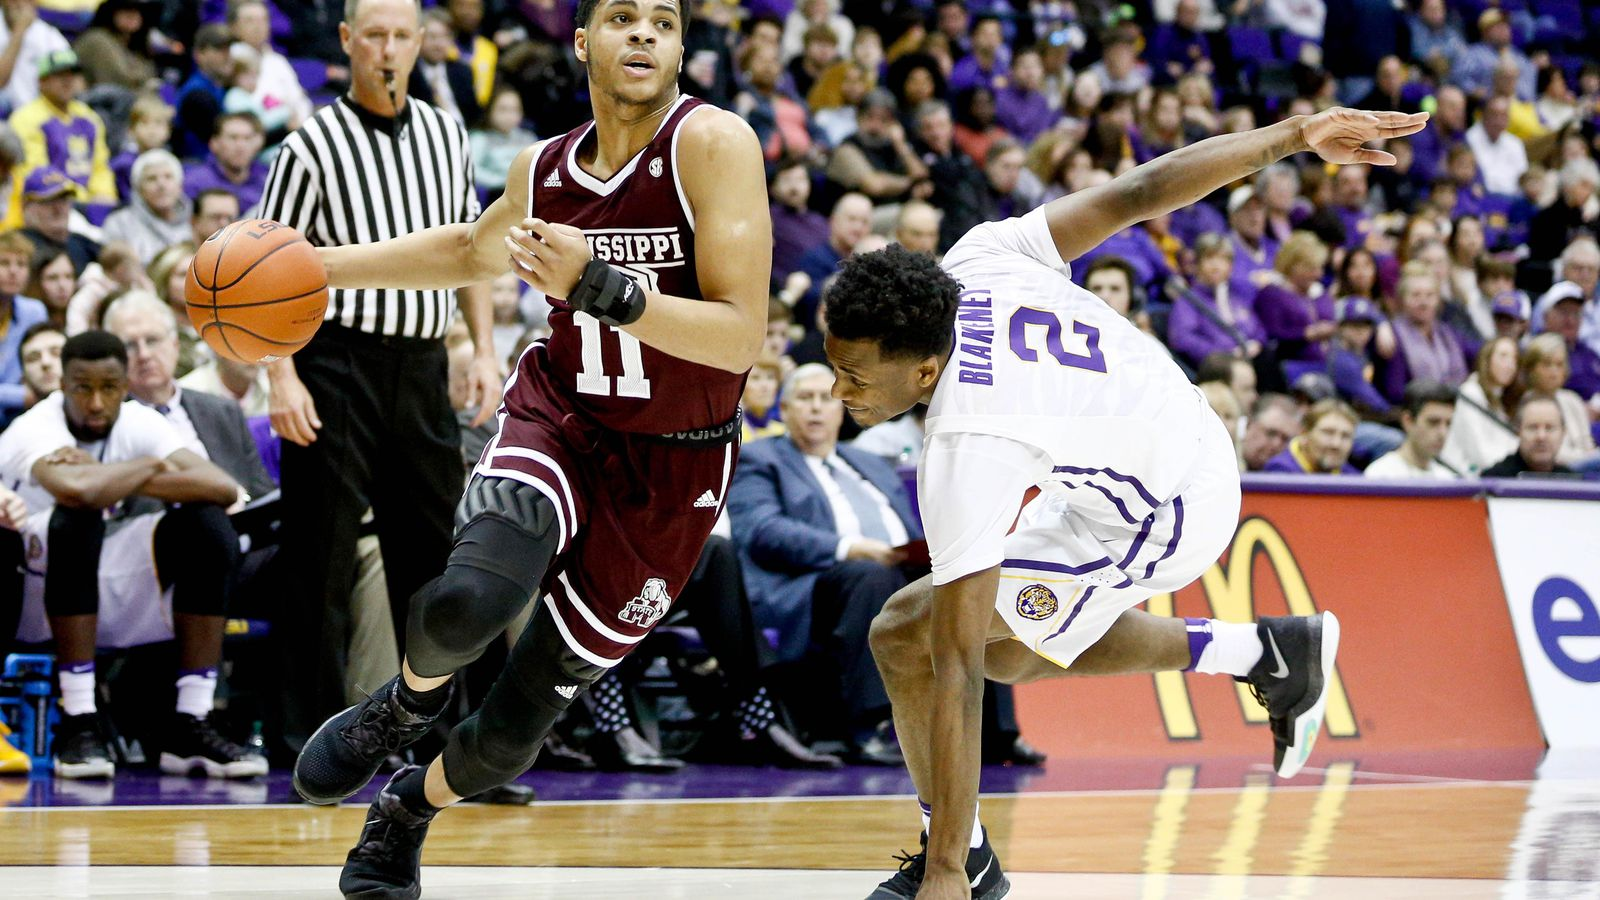 an overview of basketballs greatest players College basketball's most impactful returning players for 2016-17 season the ncaa decision to change its rules in regards to nba draft early entry created a new holiday for college basketball, not one to rival selection sunday or the first two days of ncaa tournament play, but certainly one a lot of college coaches and fans celebrated.